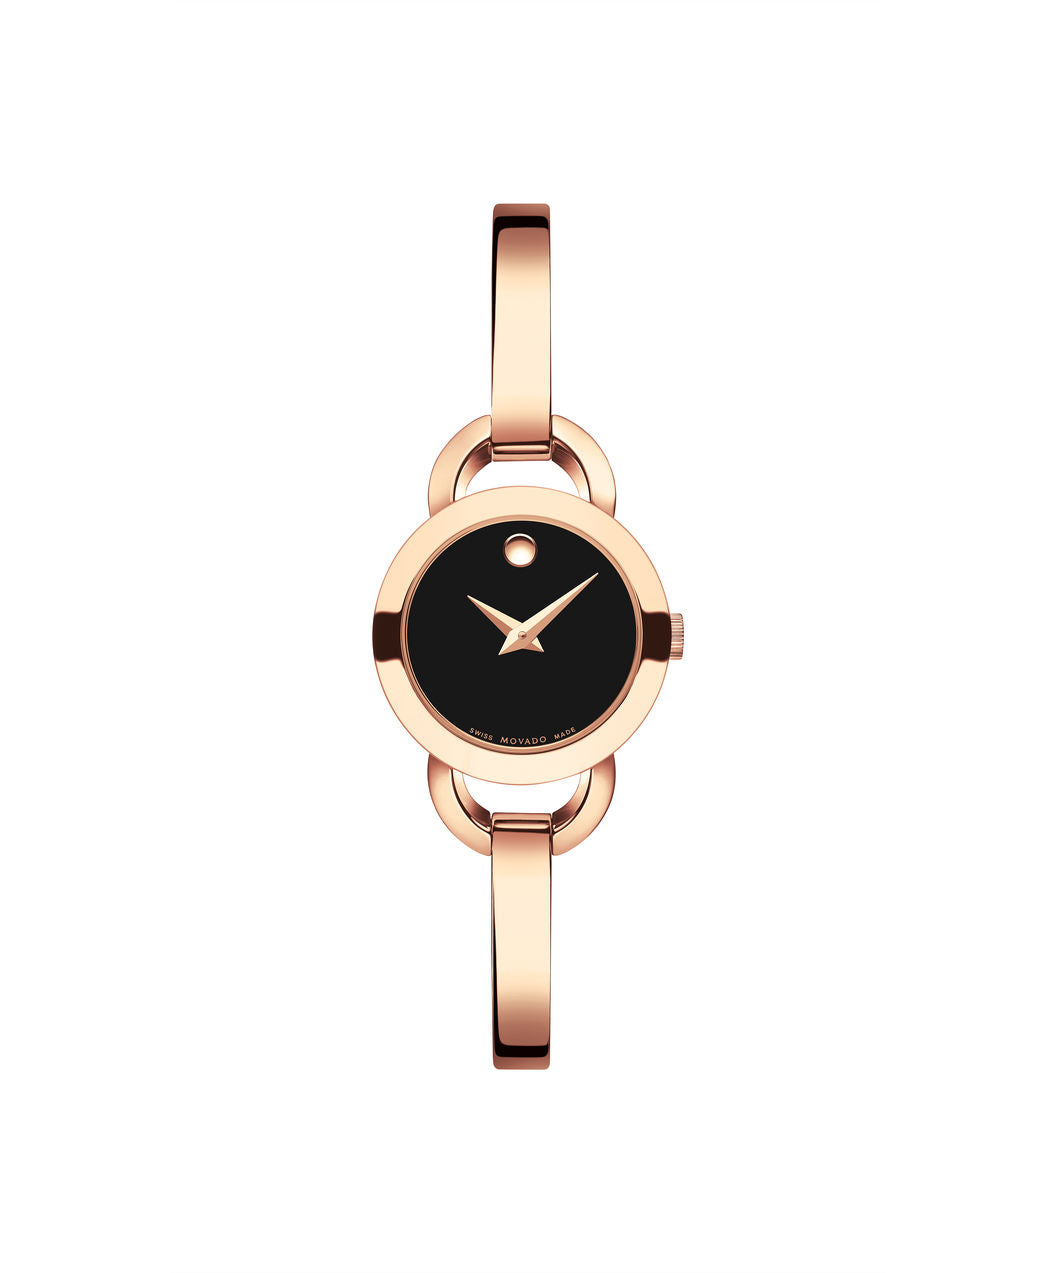 Movado Women's Rondiro Watch, 22 mm Rose Gold PVD Stainless Steel with Open Semicircular Lugs 0607065 - Arnik Jewellers